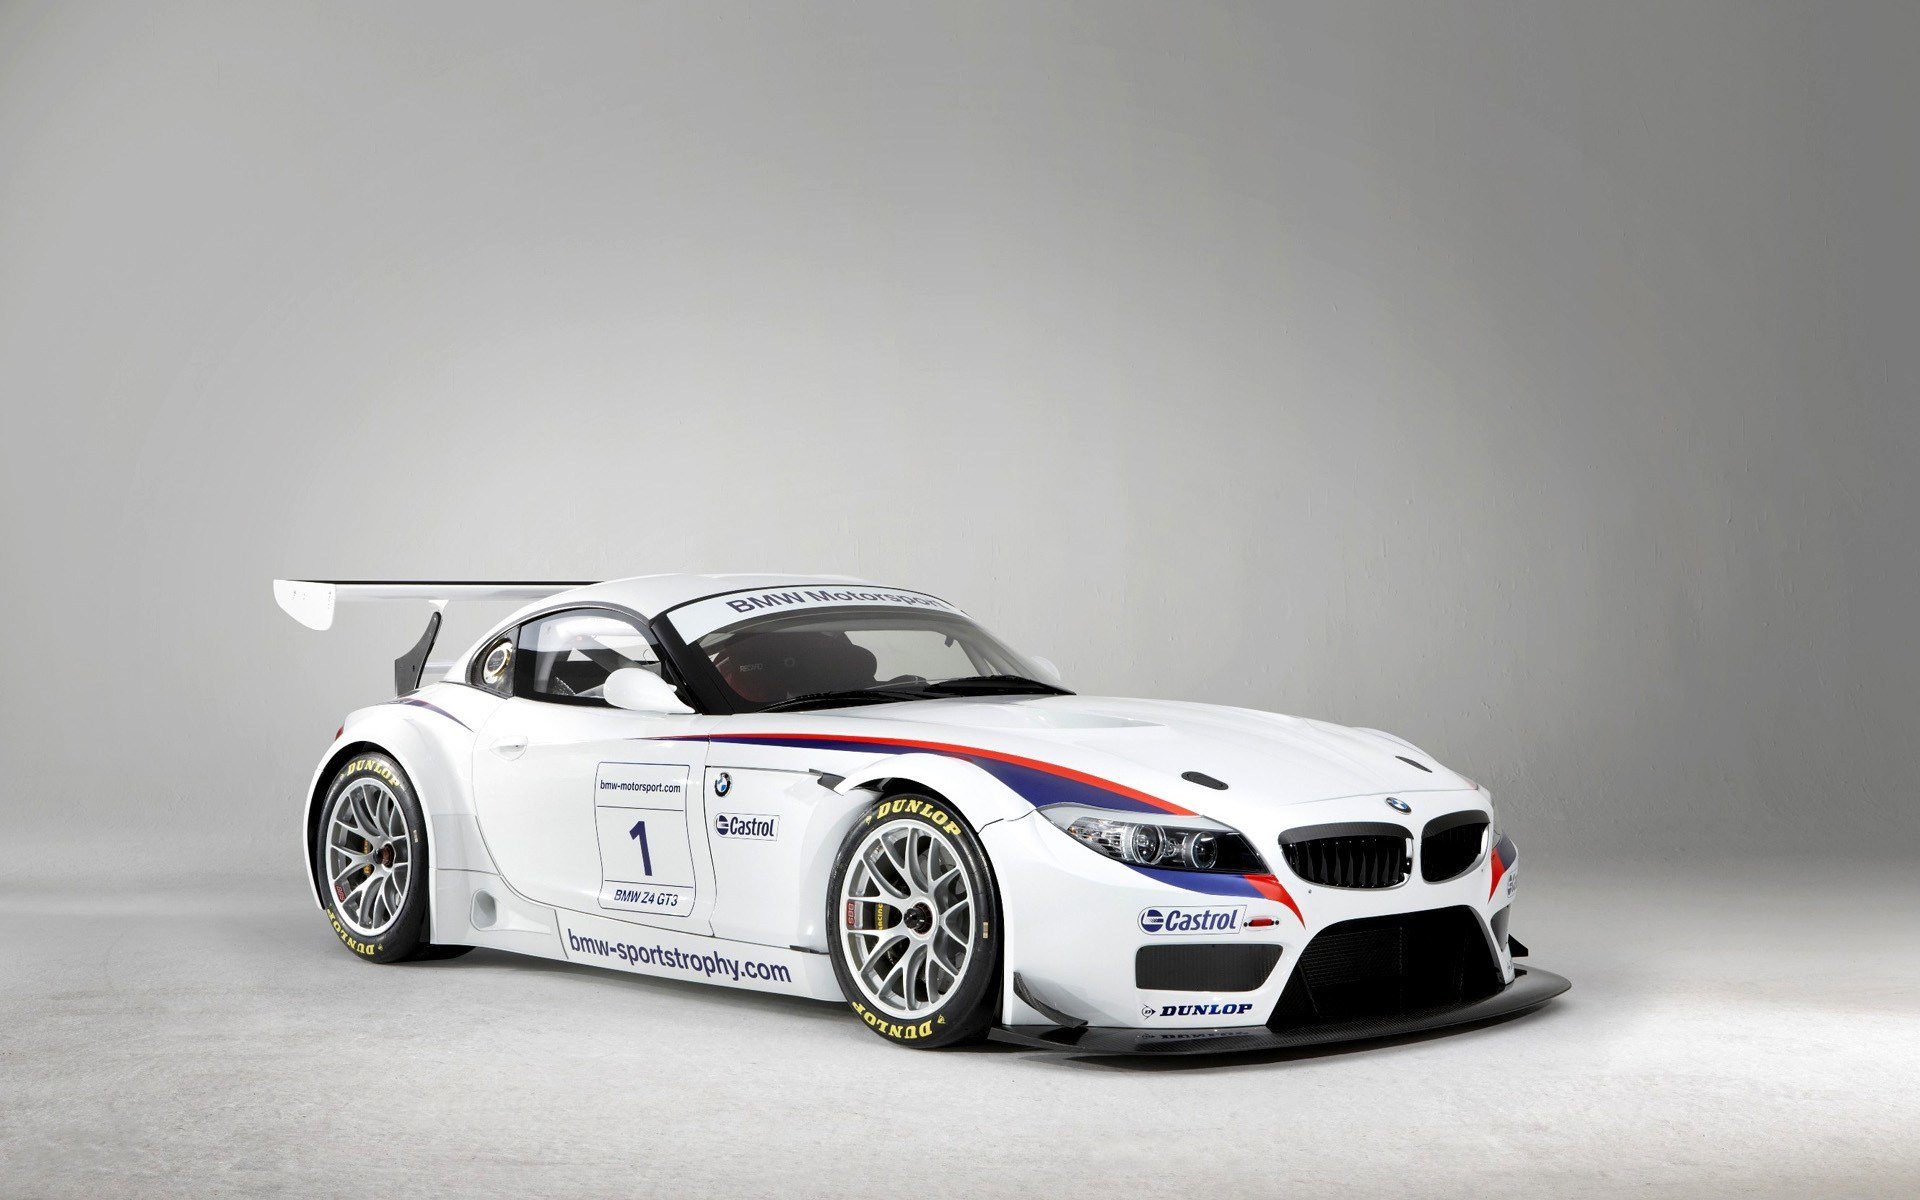 Latest Bmw Z4 Gt3 Wallpaper Hd Car Wallpapers Id 2547 Free Download Original 1024 x 768